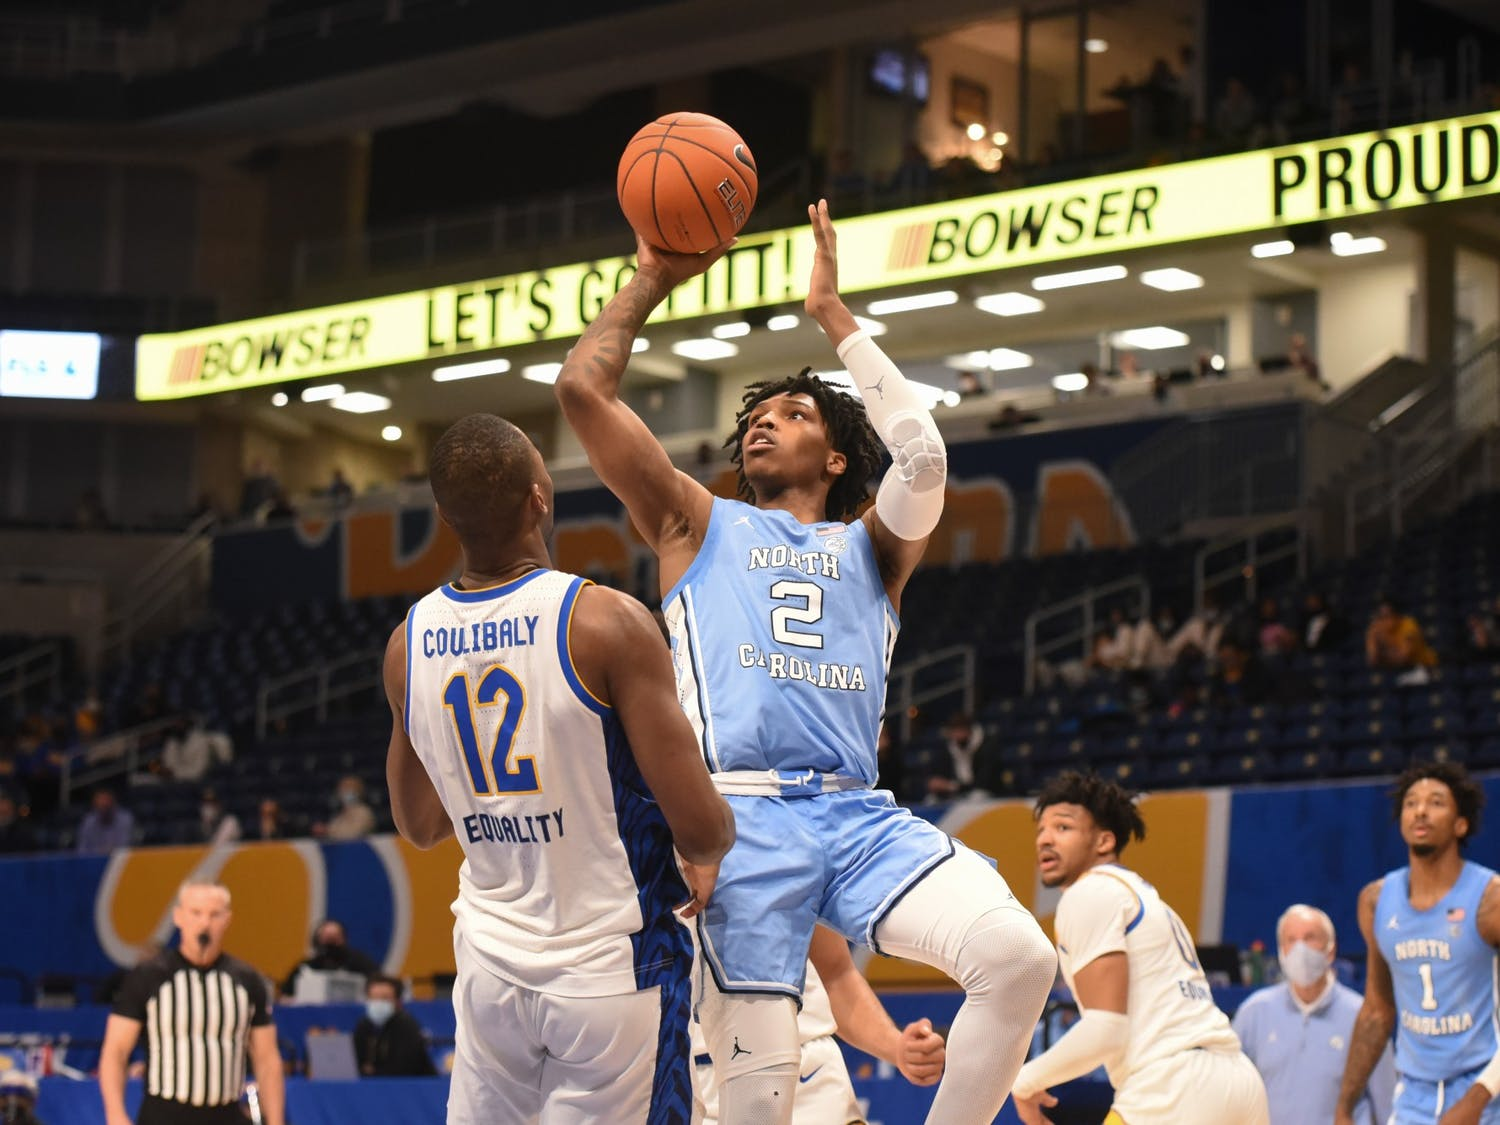 North Carolina freshman Caleb Love hasn't been able to translate his game to the college level very well so far.